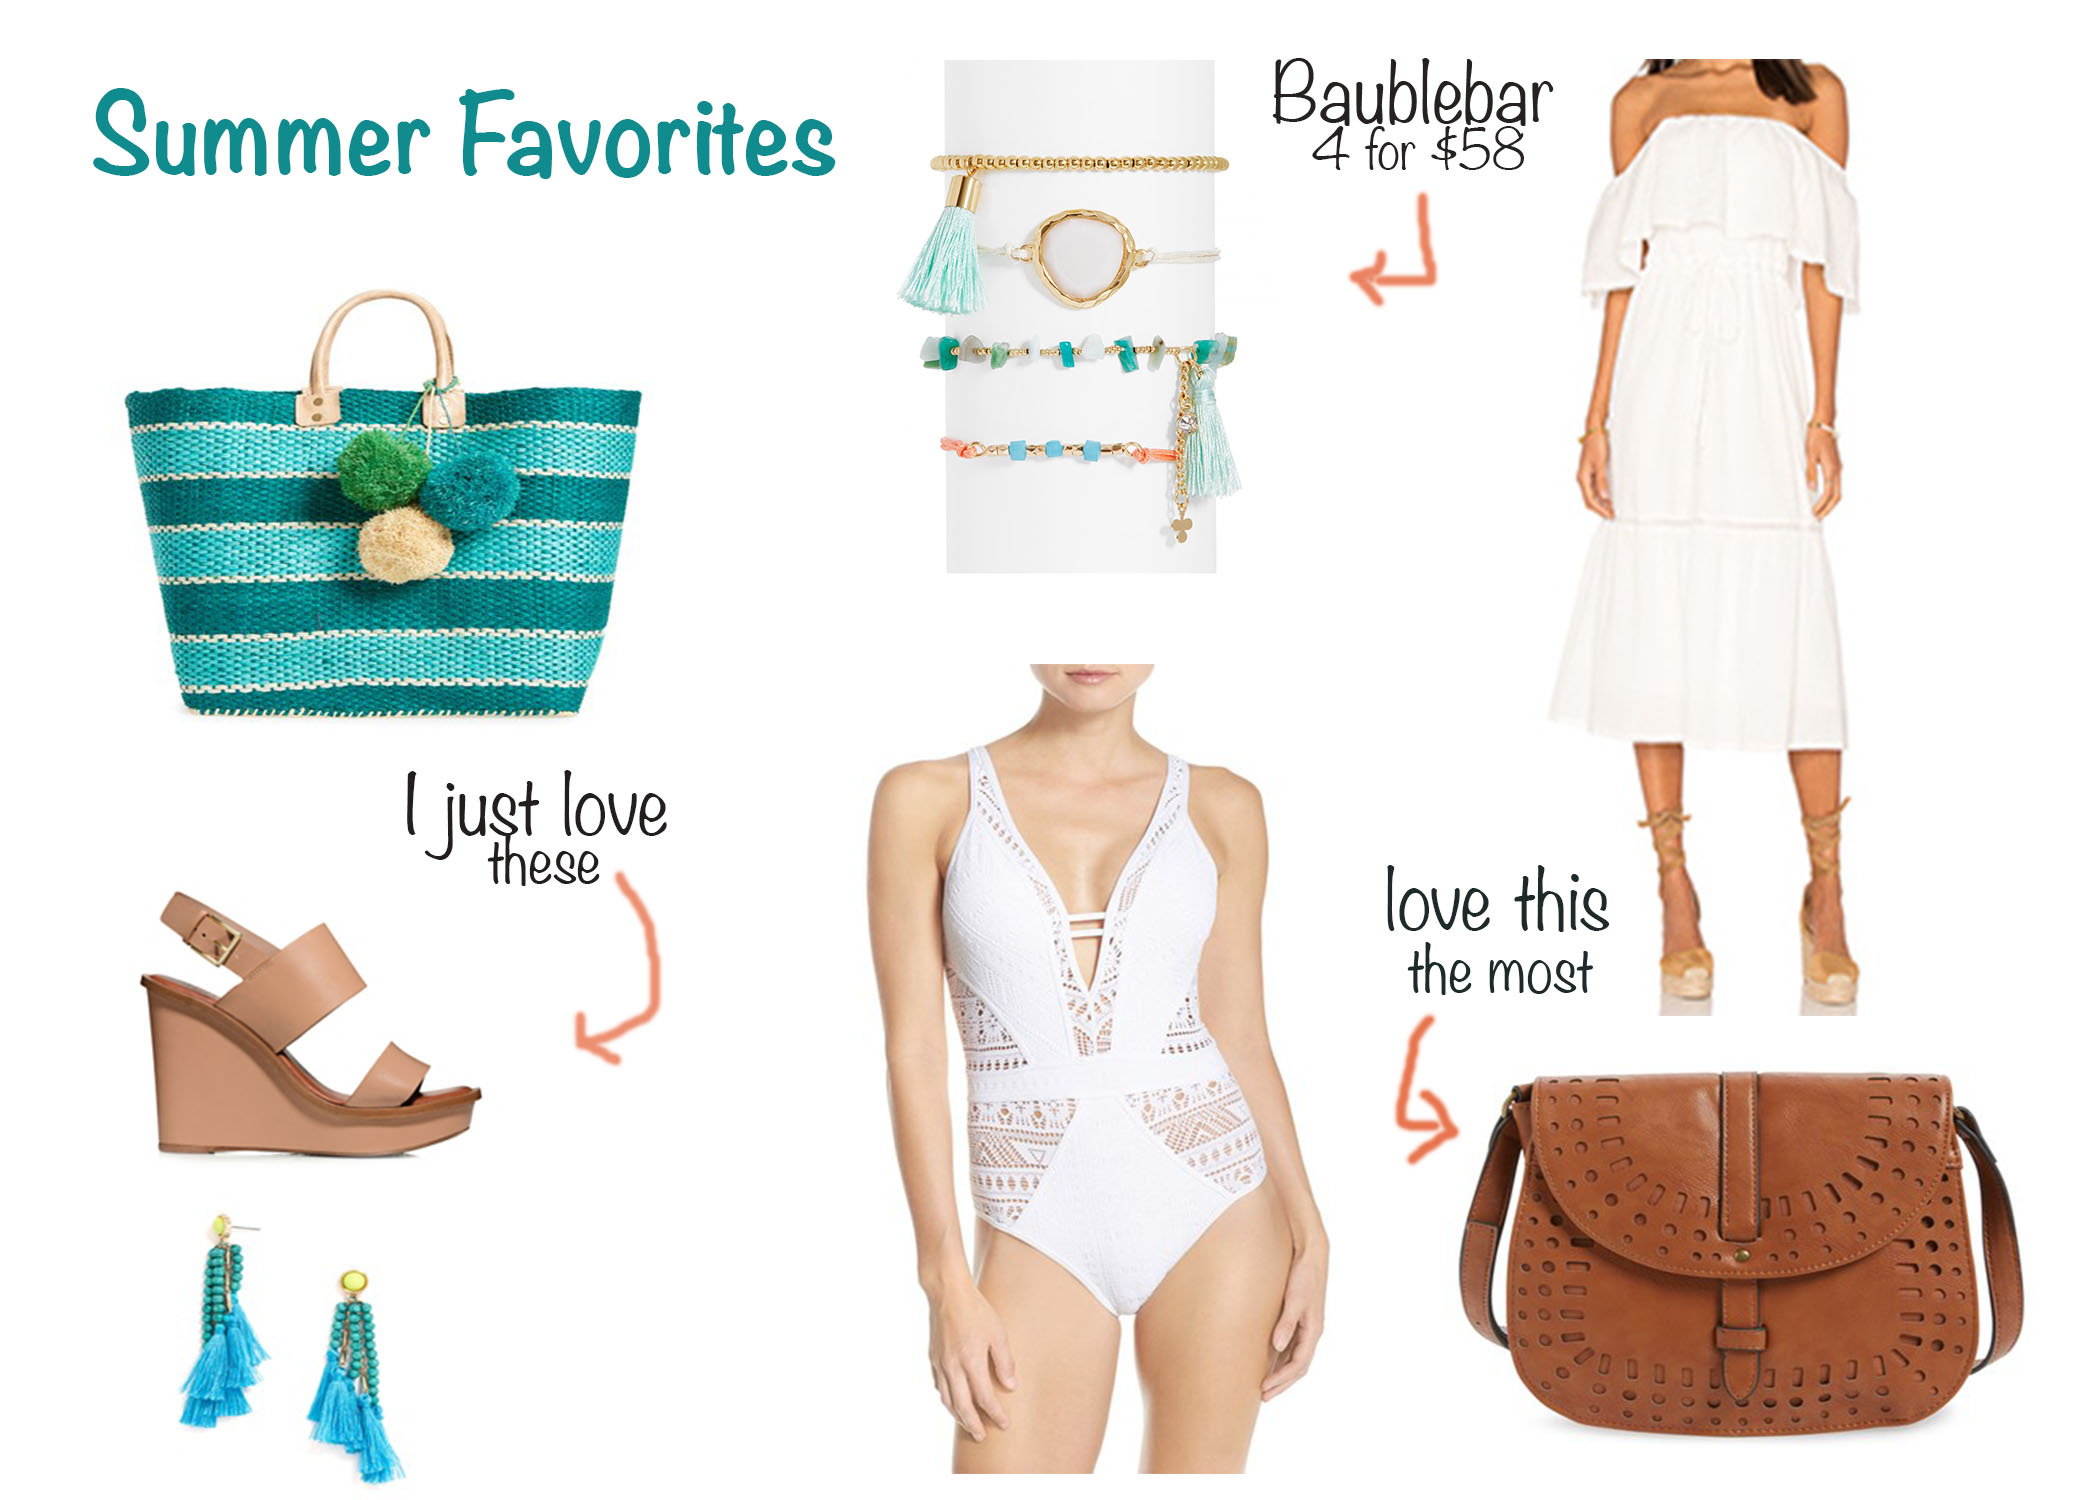 My Personal Summer Favorites